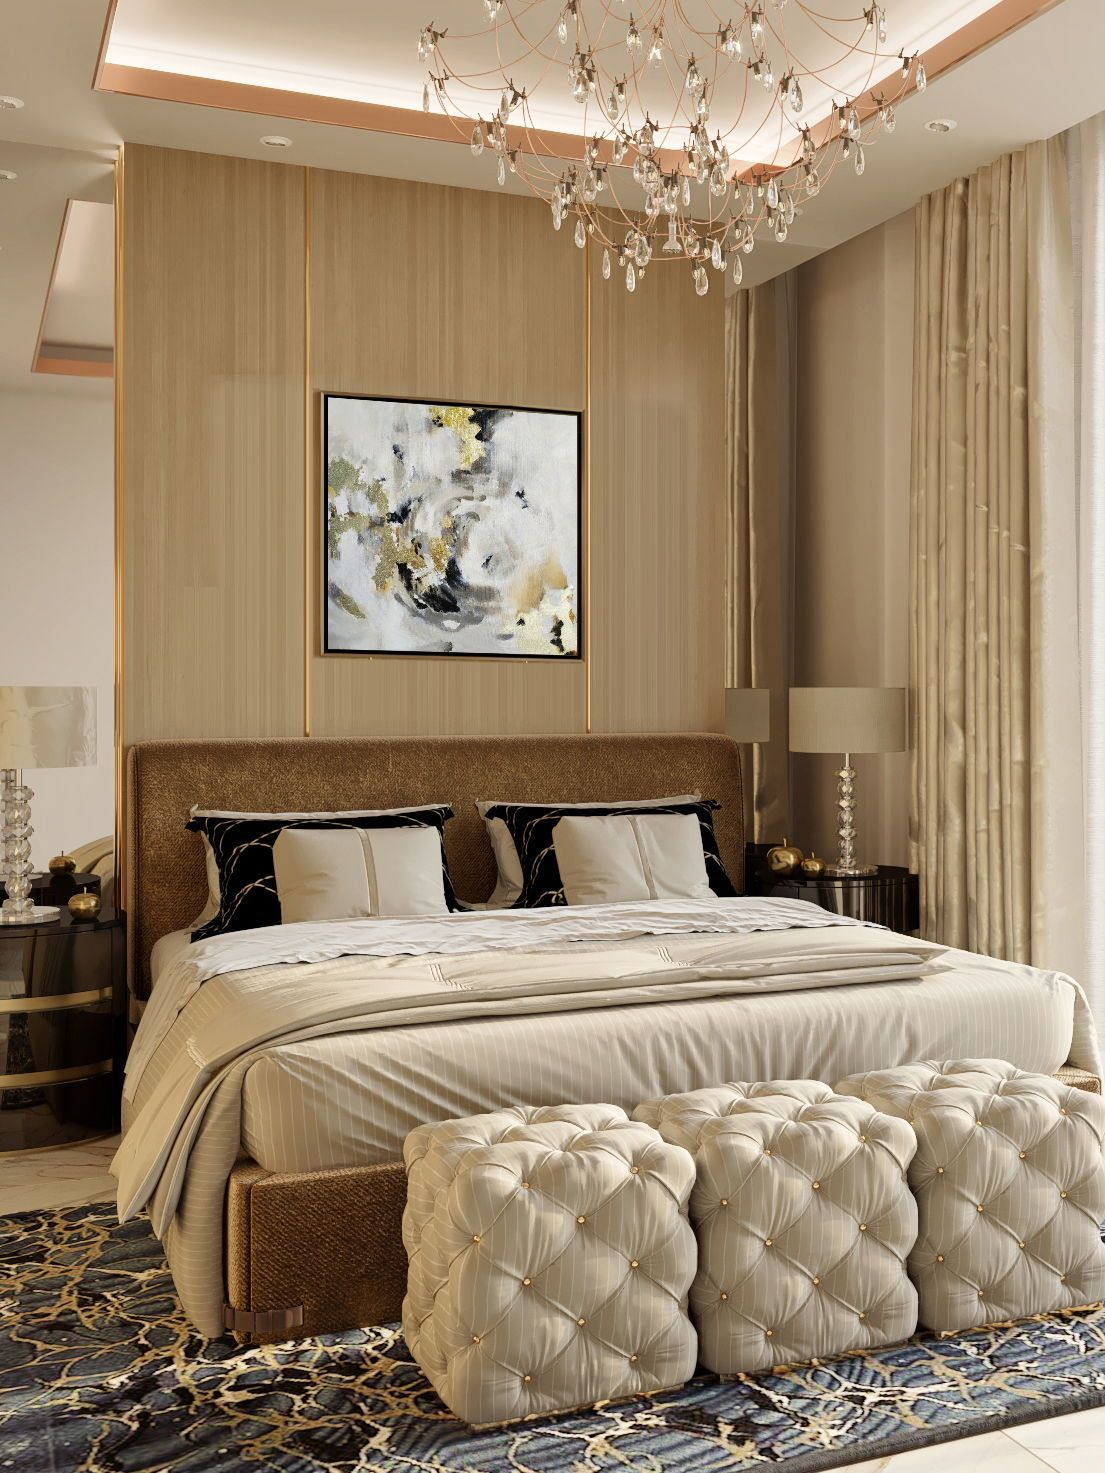 Abstract Artwork Painting For Bedroom For Hanging Above The Bed In 2020 Master Bedroom Interior Design Master Bedroom Interior Interior Design